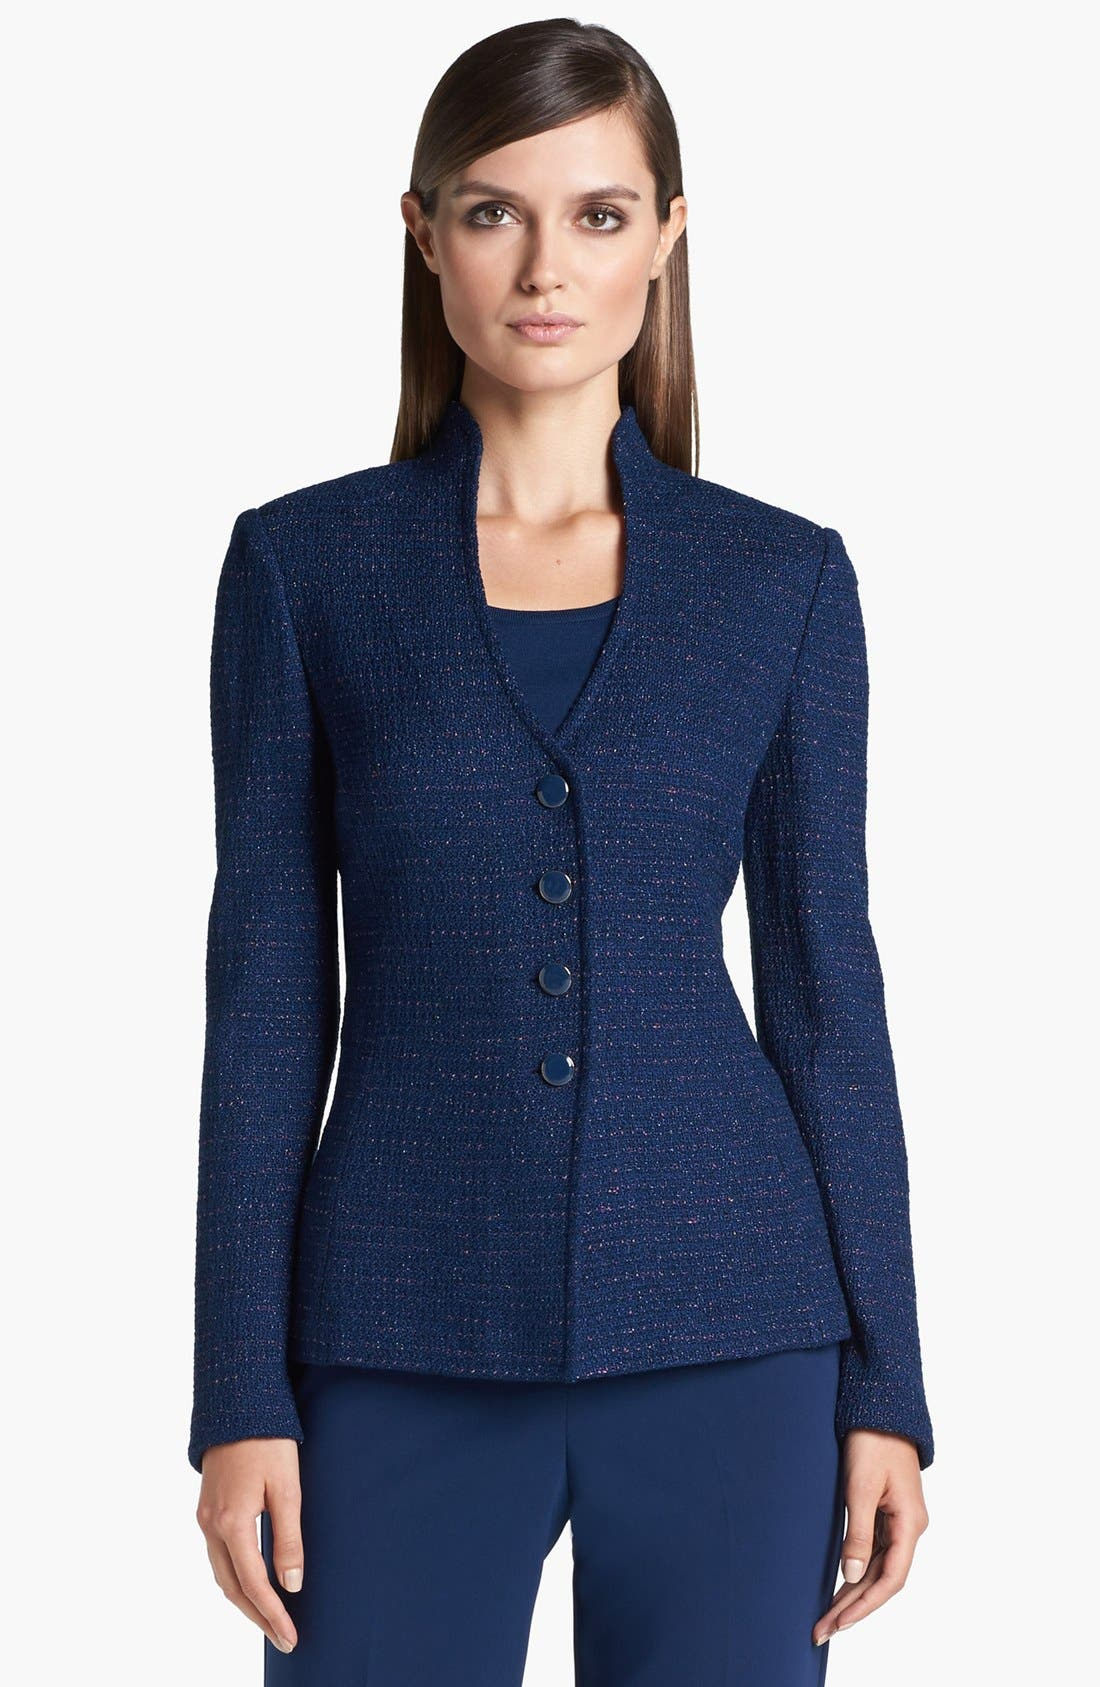 Alternate Image 1 Selected - St. John Collection Novelty Dot Tweed Fitted Jacket